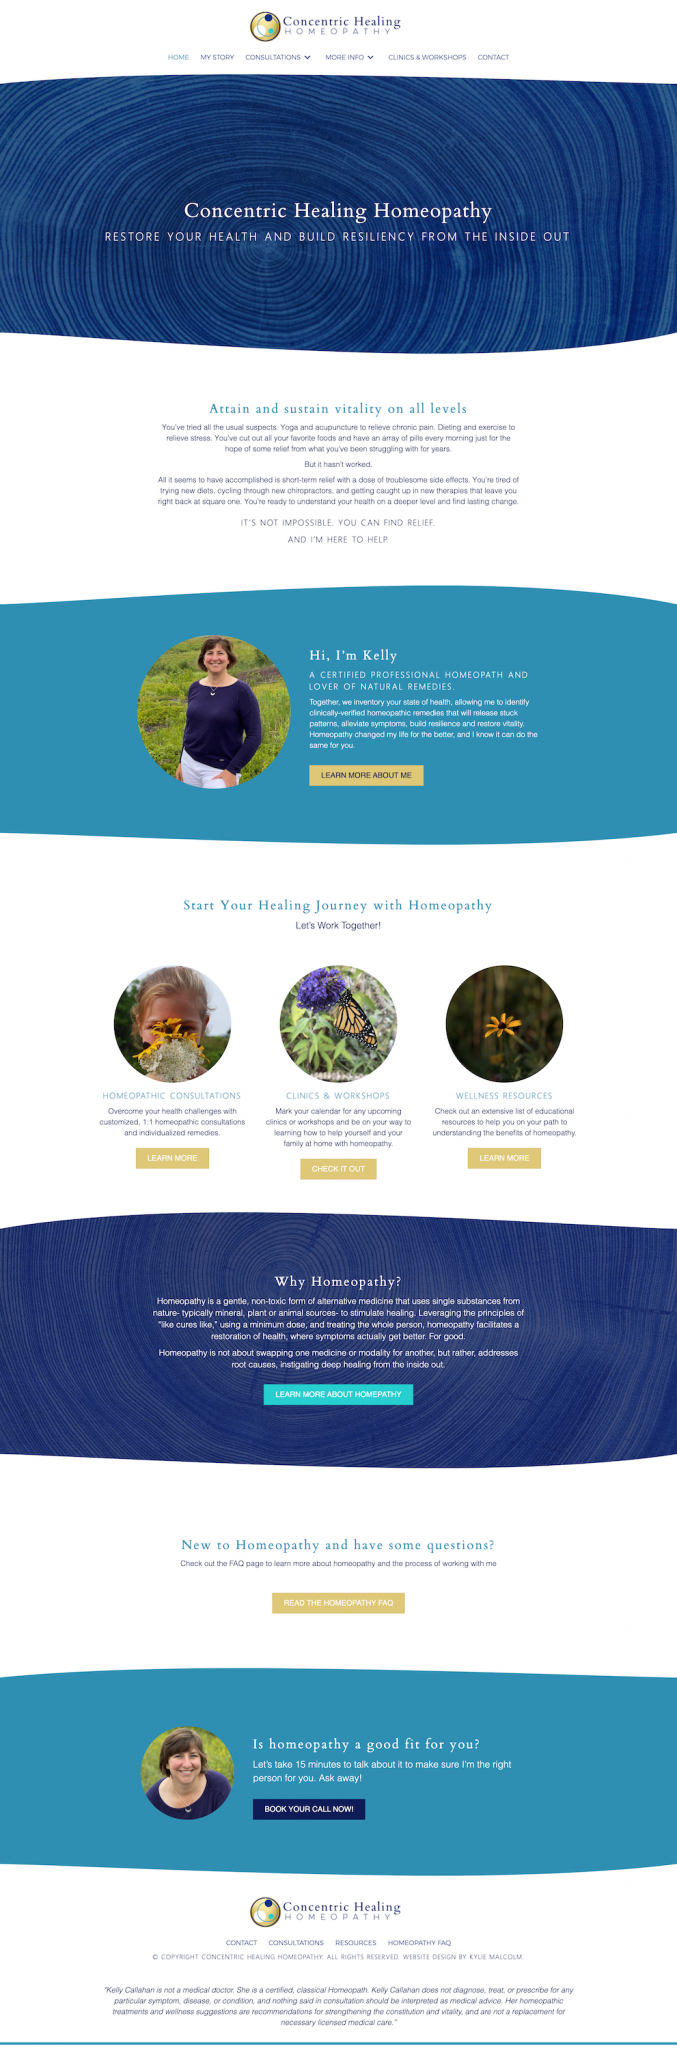 Homeopathy Website Design for Concentric healing